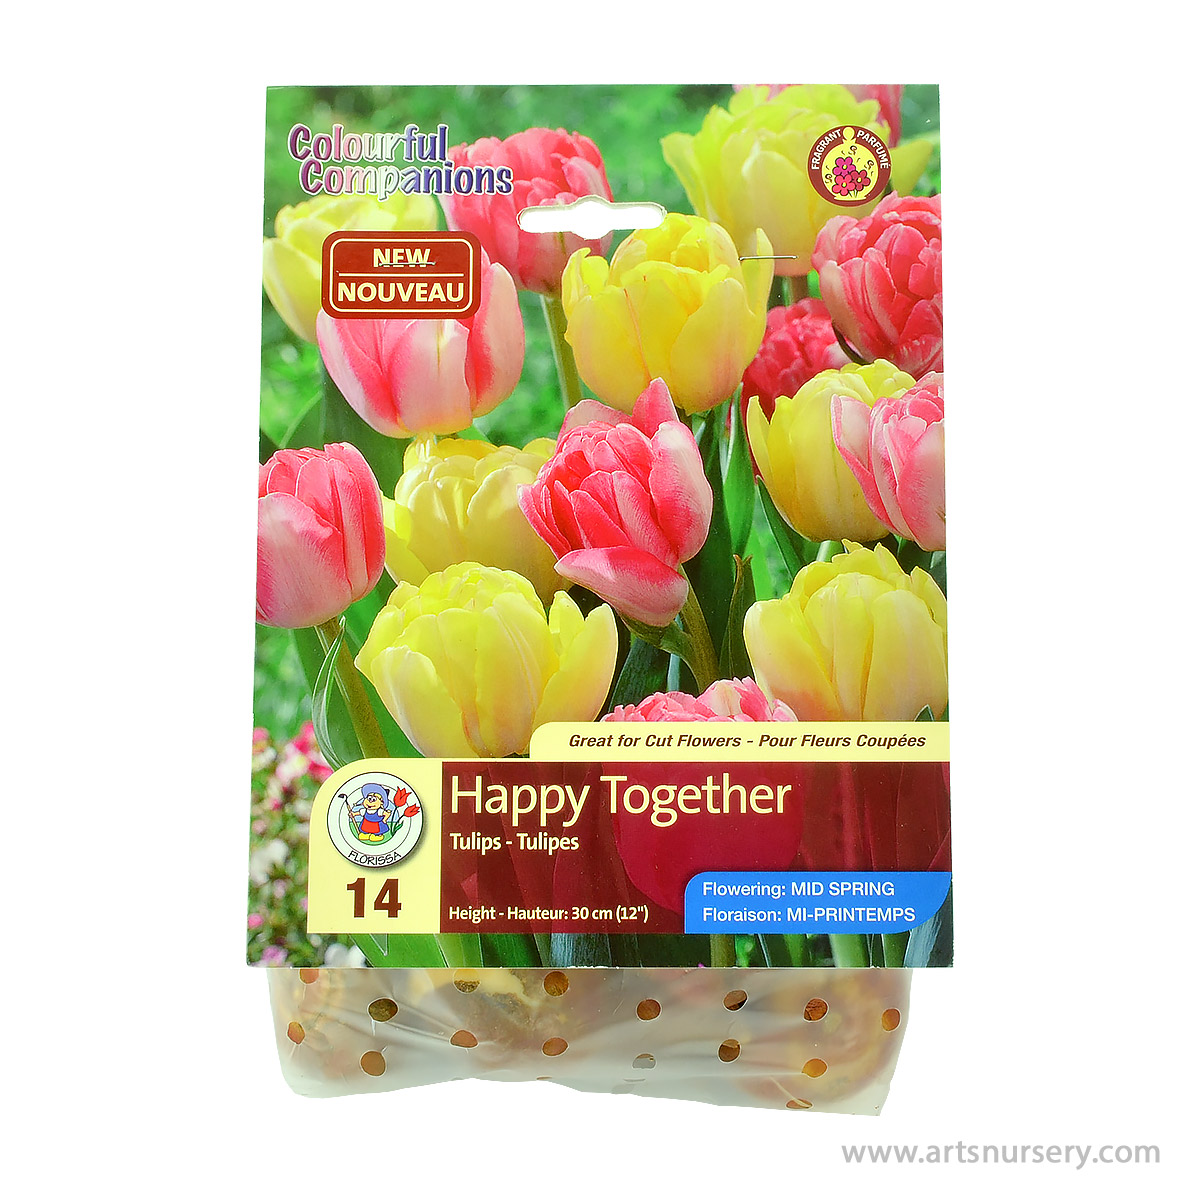 Colourful Companions Tulipa 'Happy Together' Bulbs